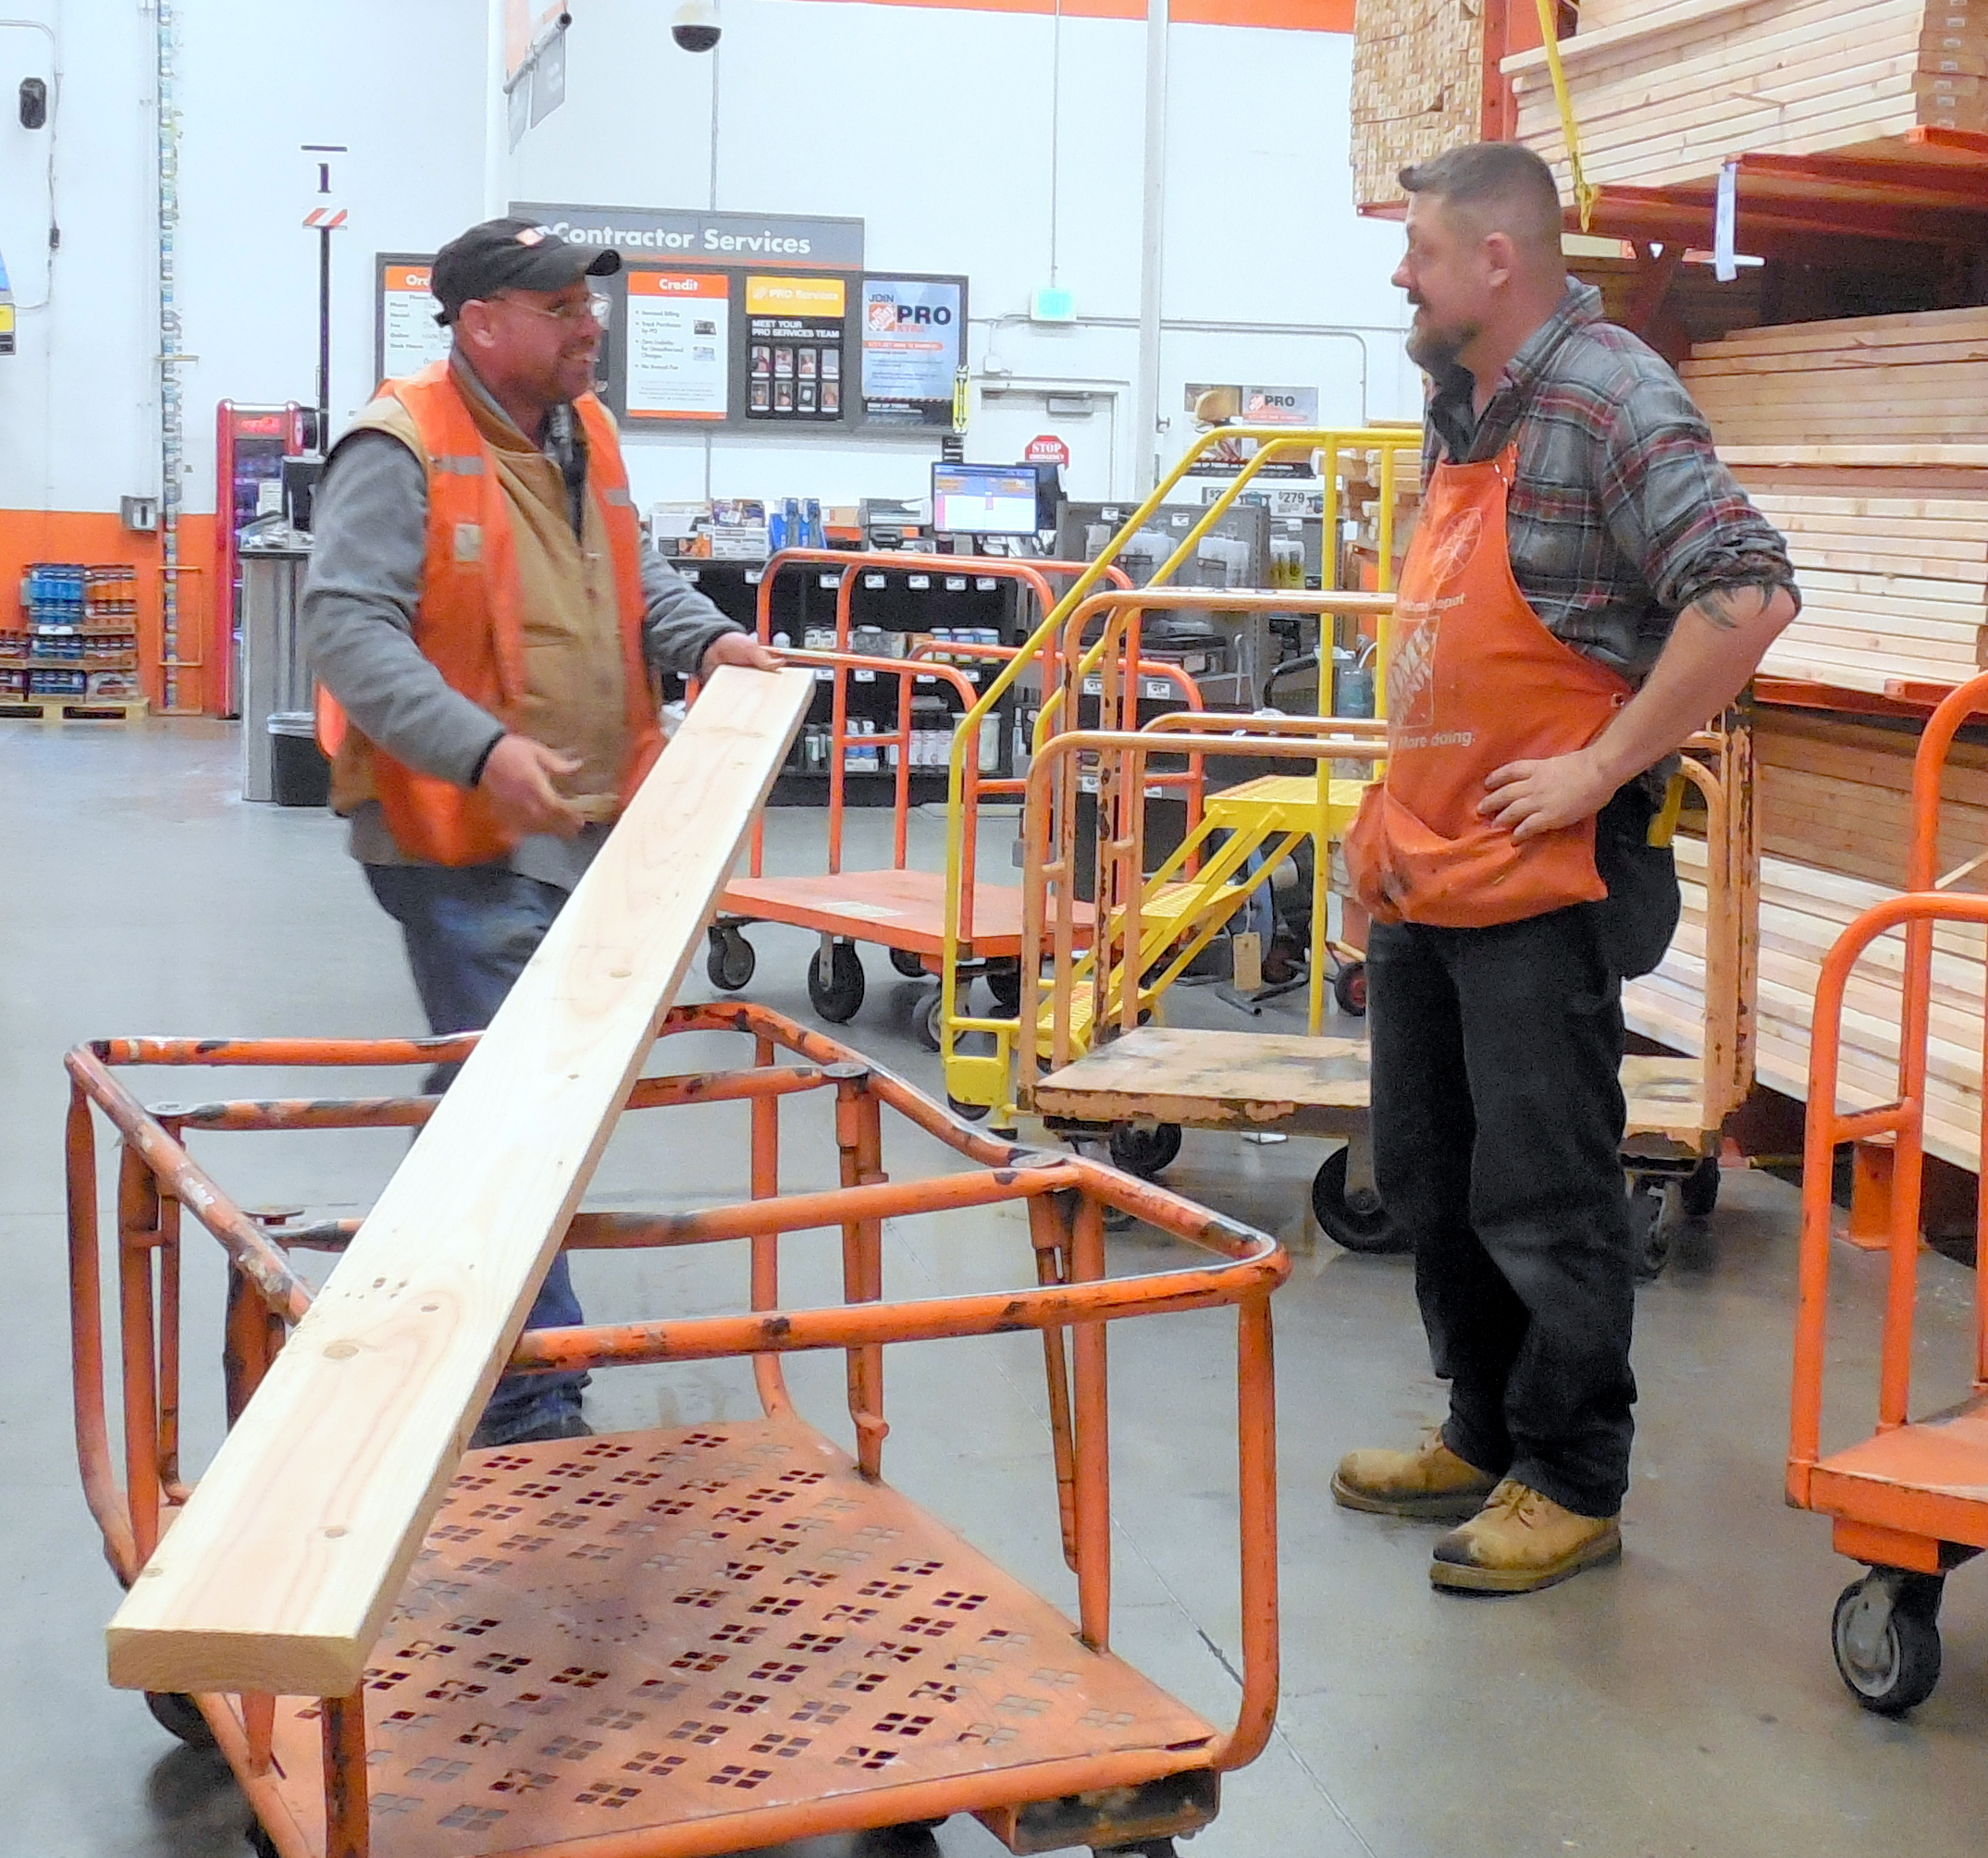 38 Home Depot-Jimmy loading lumber with Co-worker.jpg